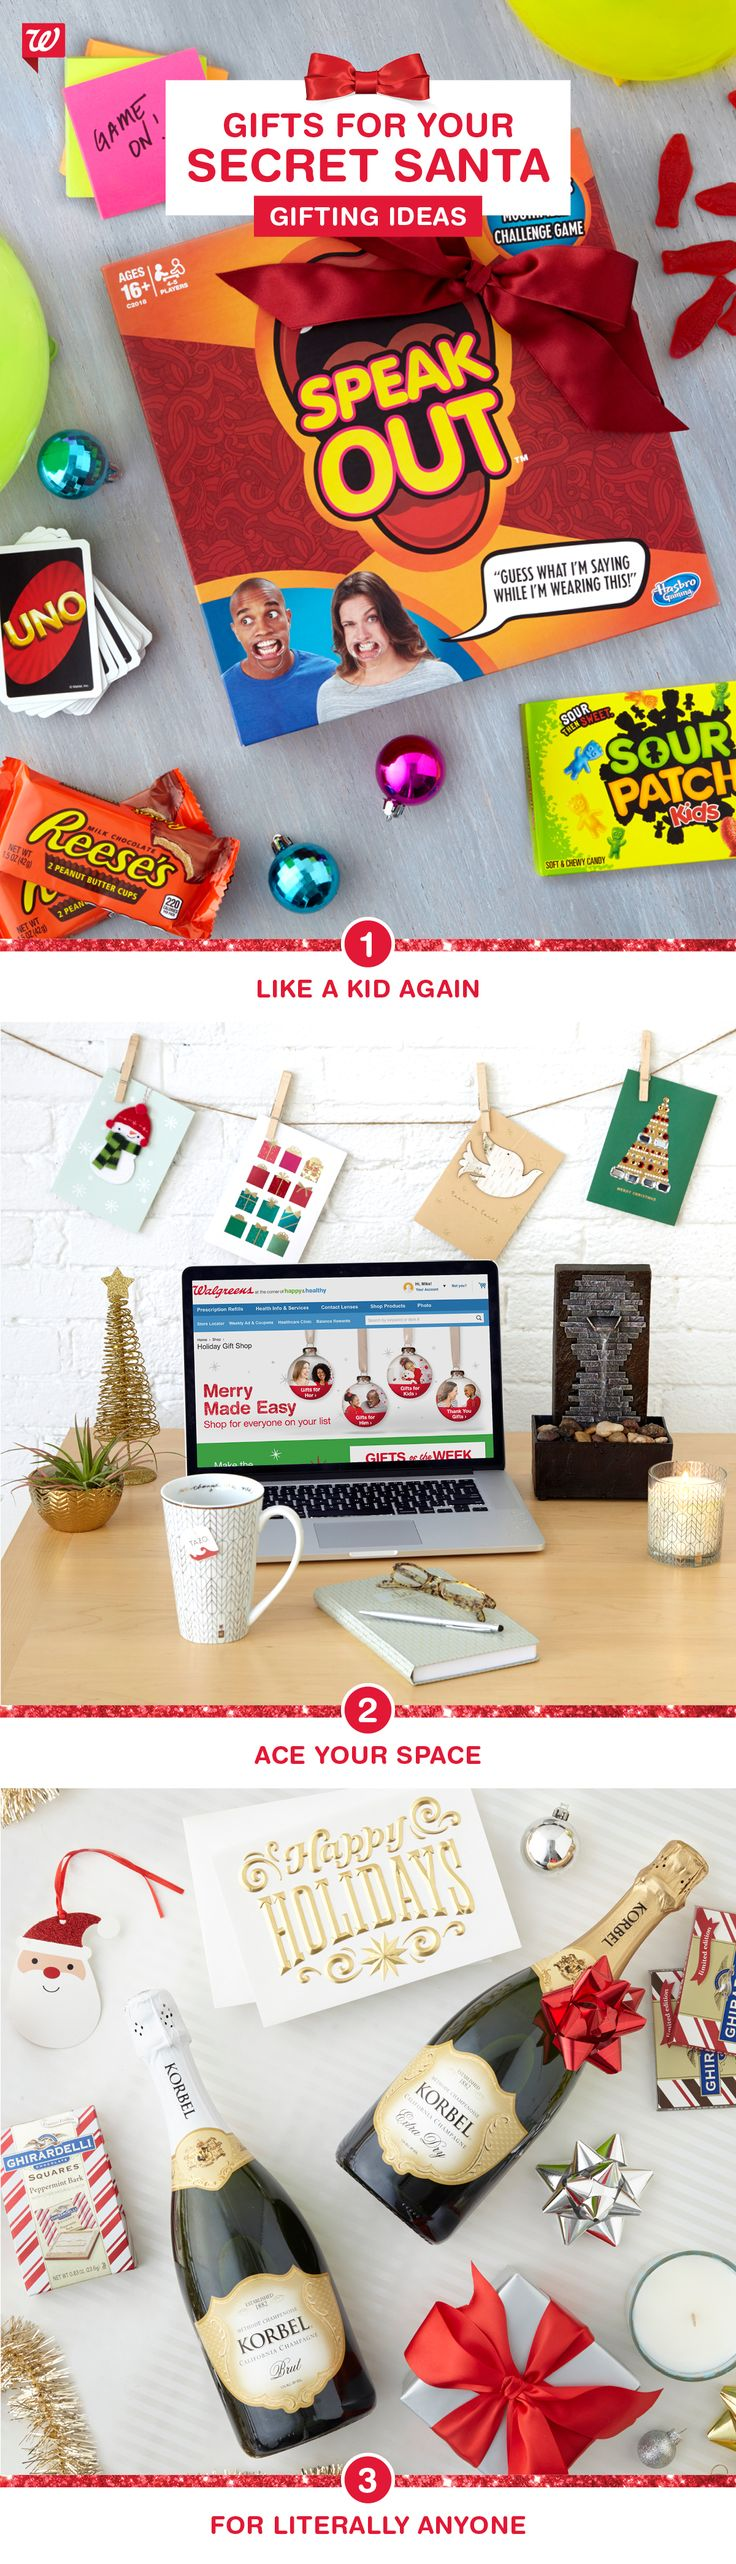 best gift ideas images on pinterest gift ideas natal and